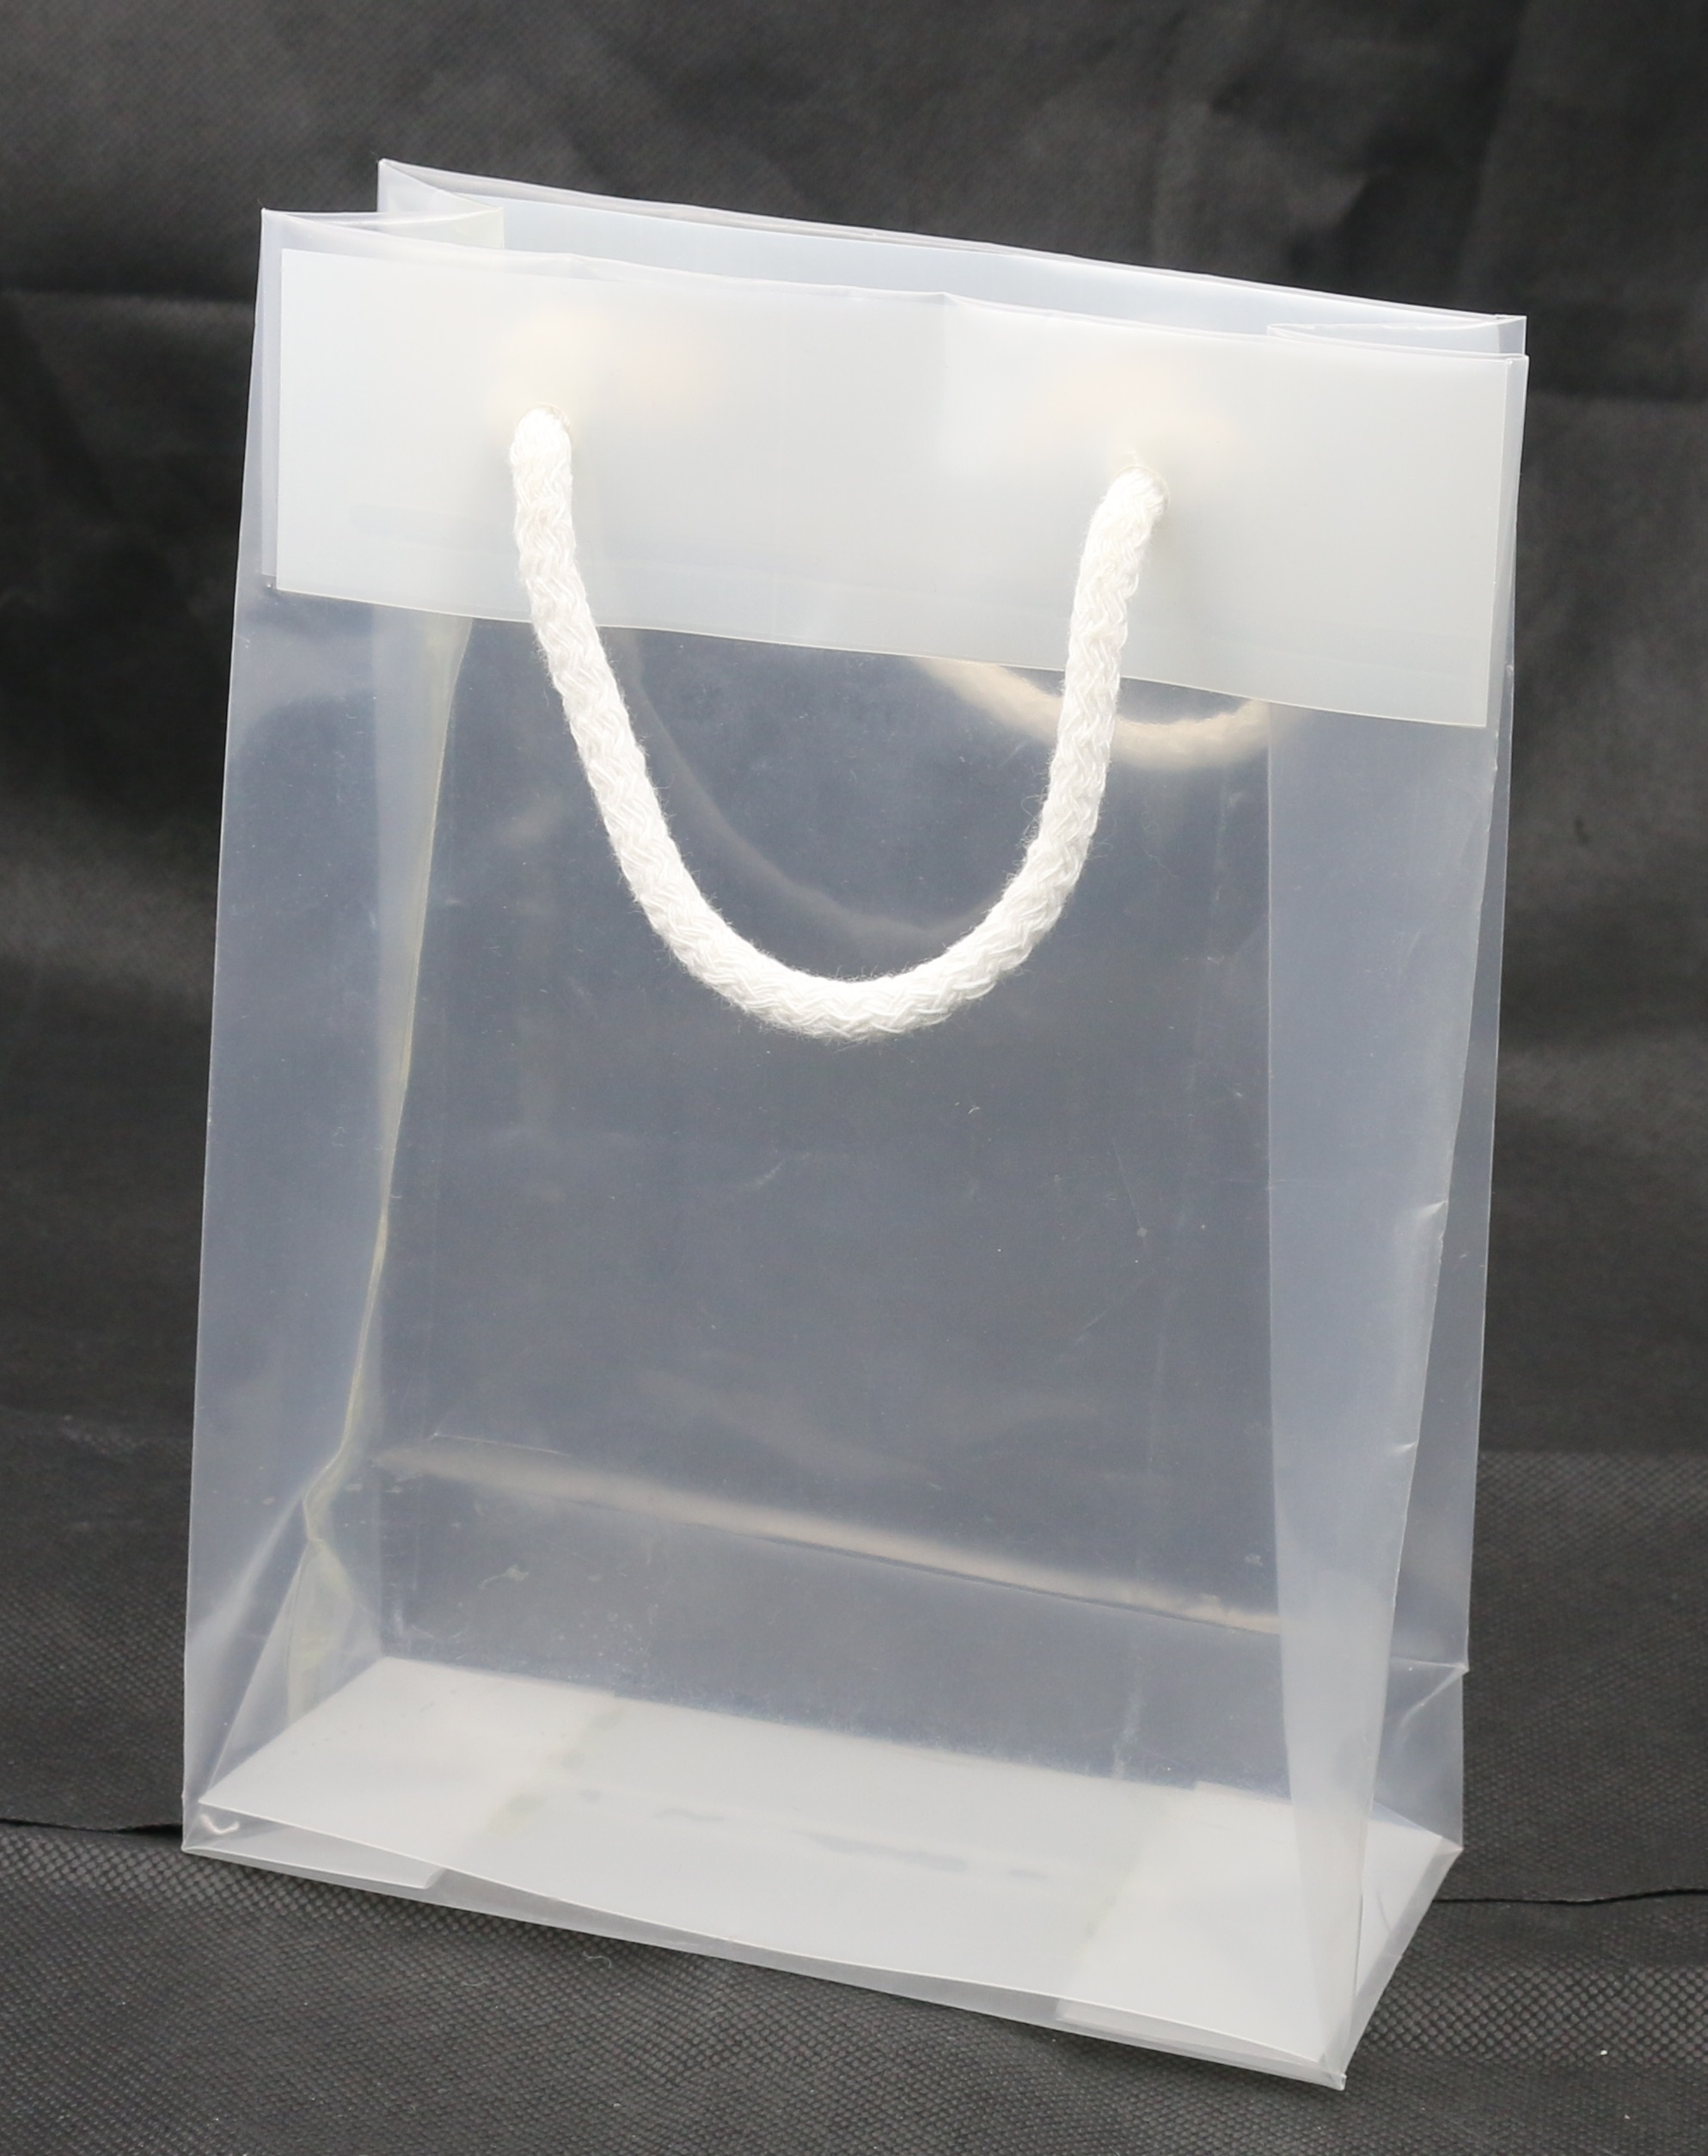 Flaschentaschen Papier Plastic Bags Promotional And Transparent Bags Bagobag